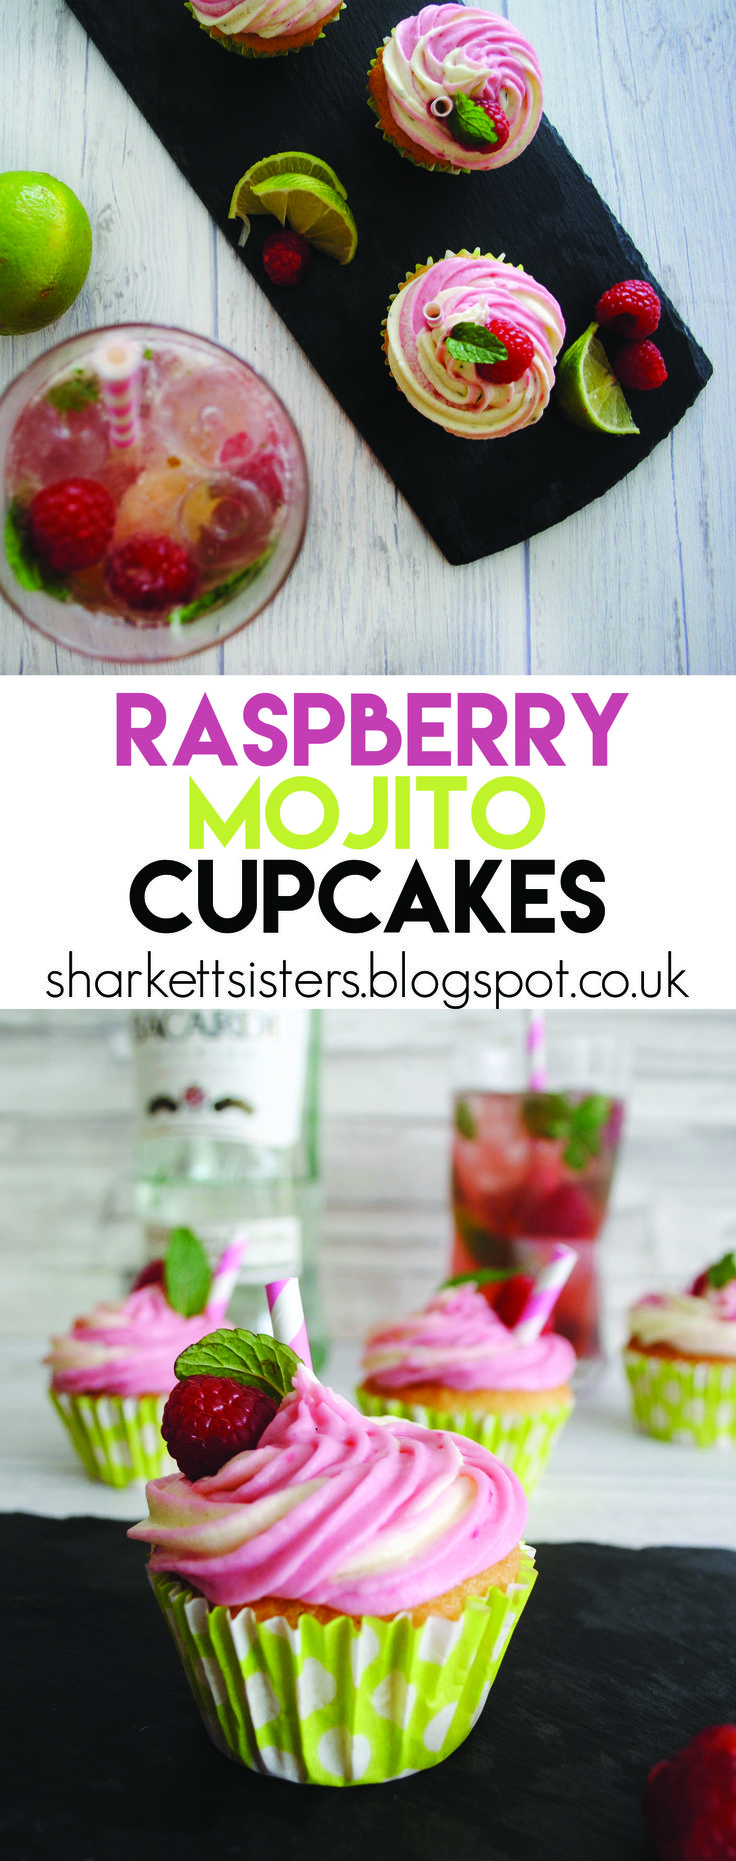 Raspberry Mojito Cupcakes! http://sharkettsisters.blogspot.co.uk/2016/08/cocktail-cupcakes-raspberry-mojito.html